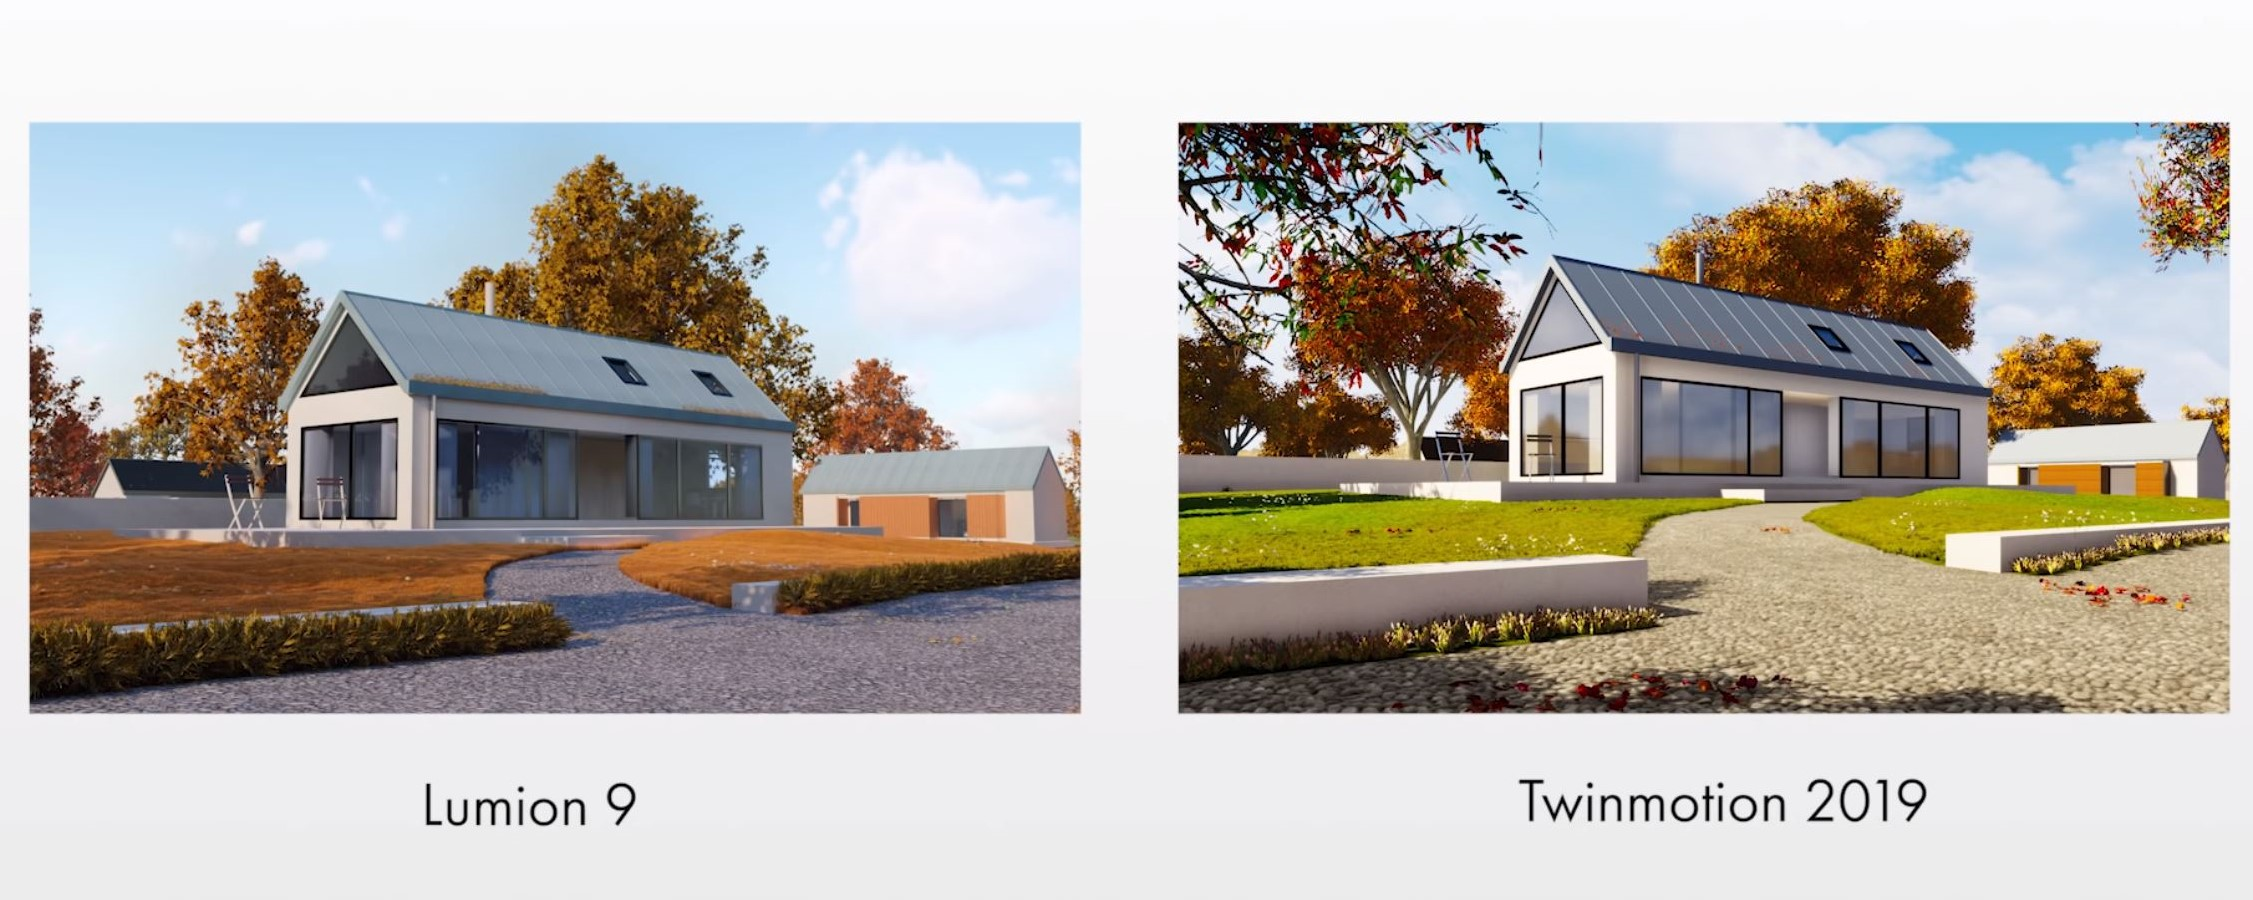 Twinmotion vs Lumion Rendering